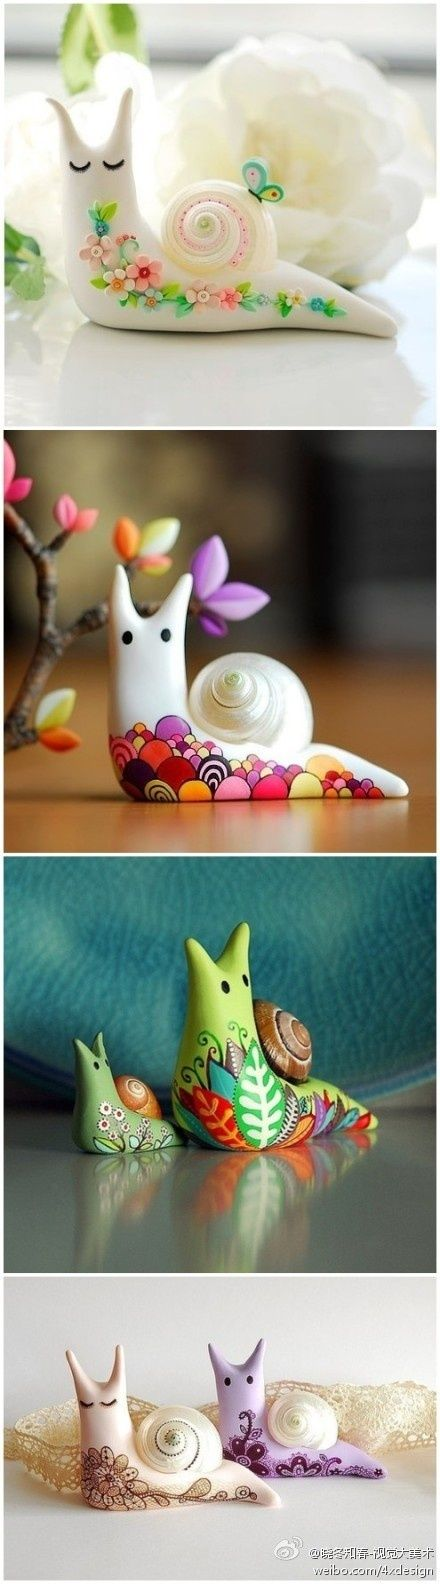 Penny Smith's World: Painted snails. So cute! Some ideas are going through my head... Shells, Fimo and paint with different themes